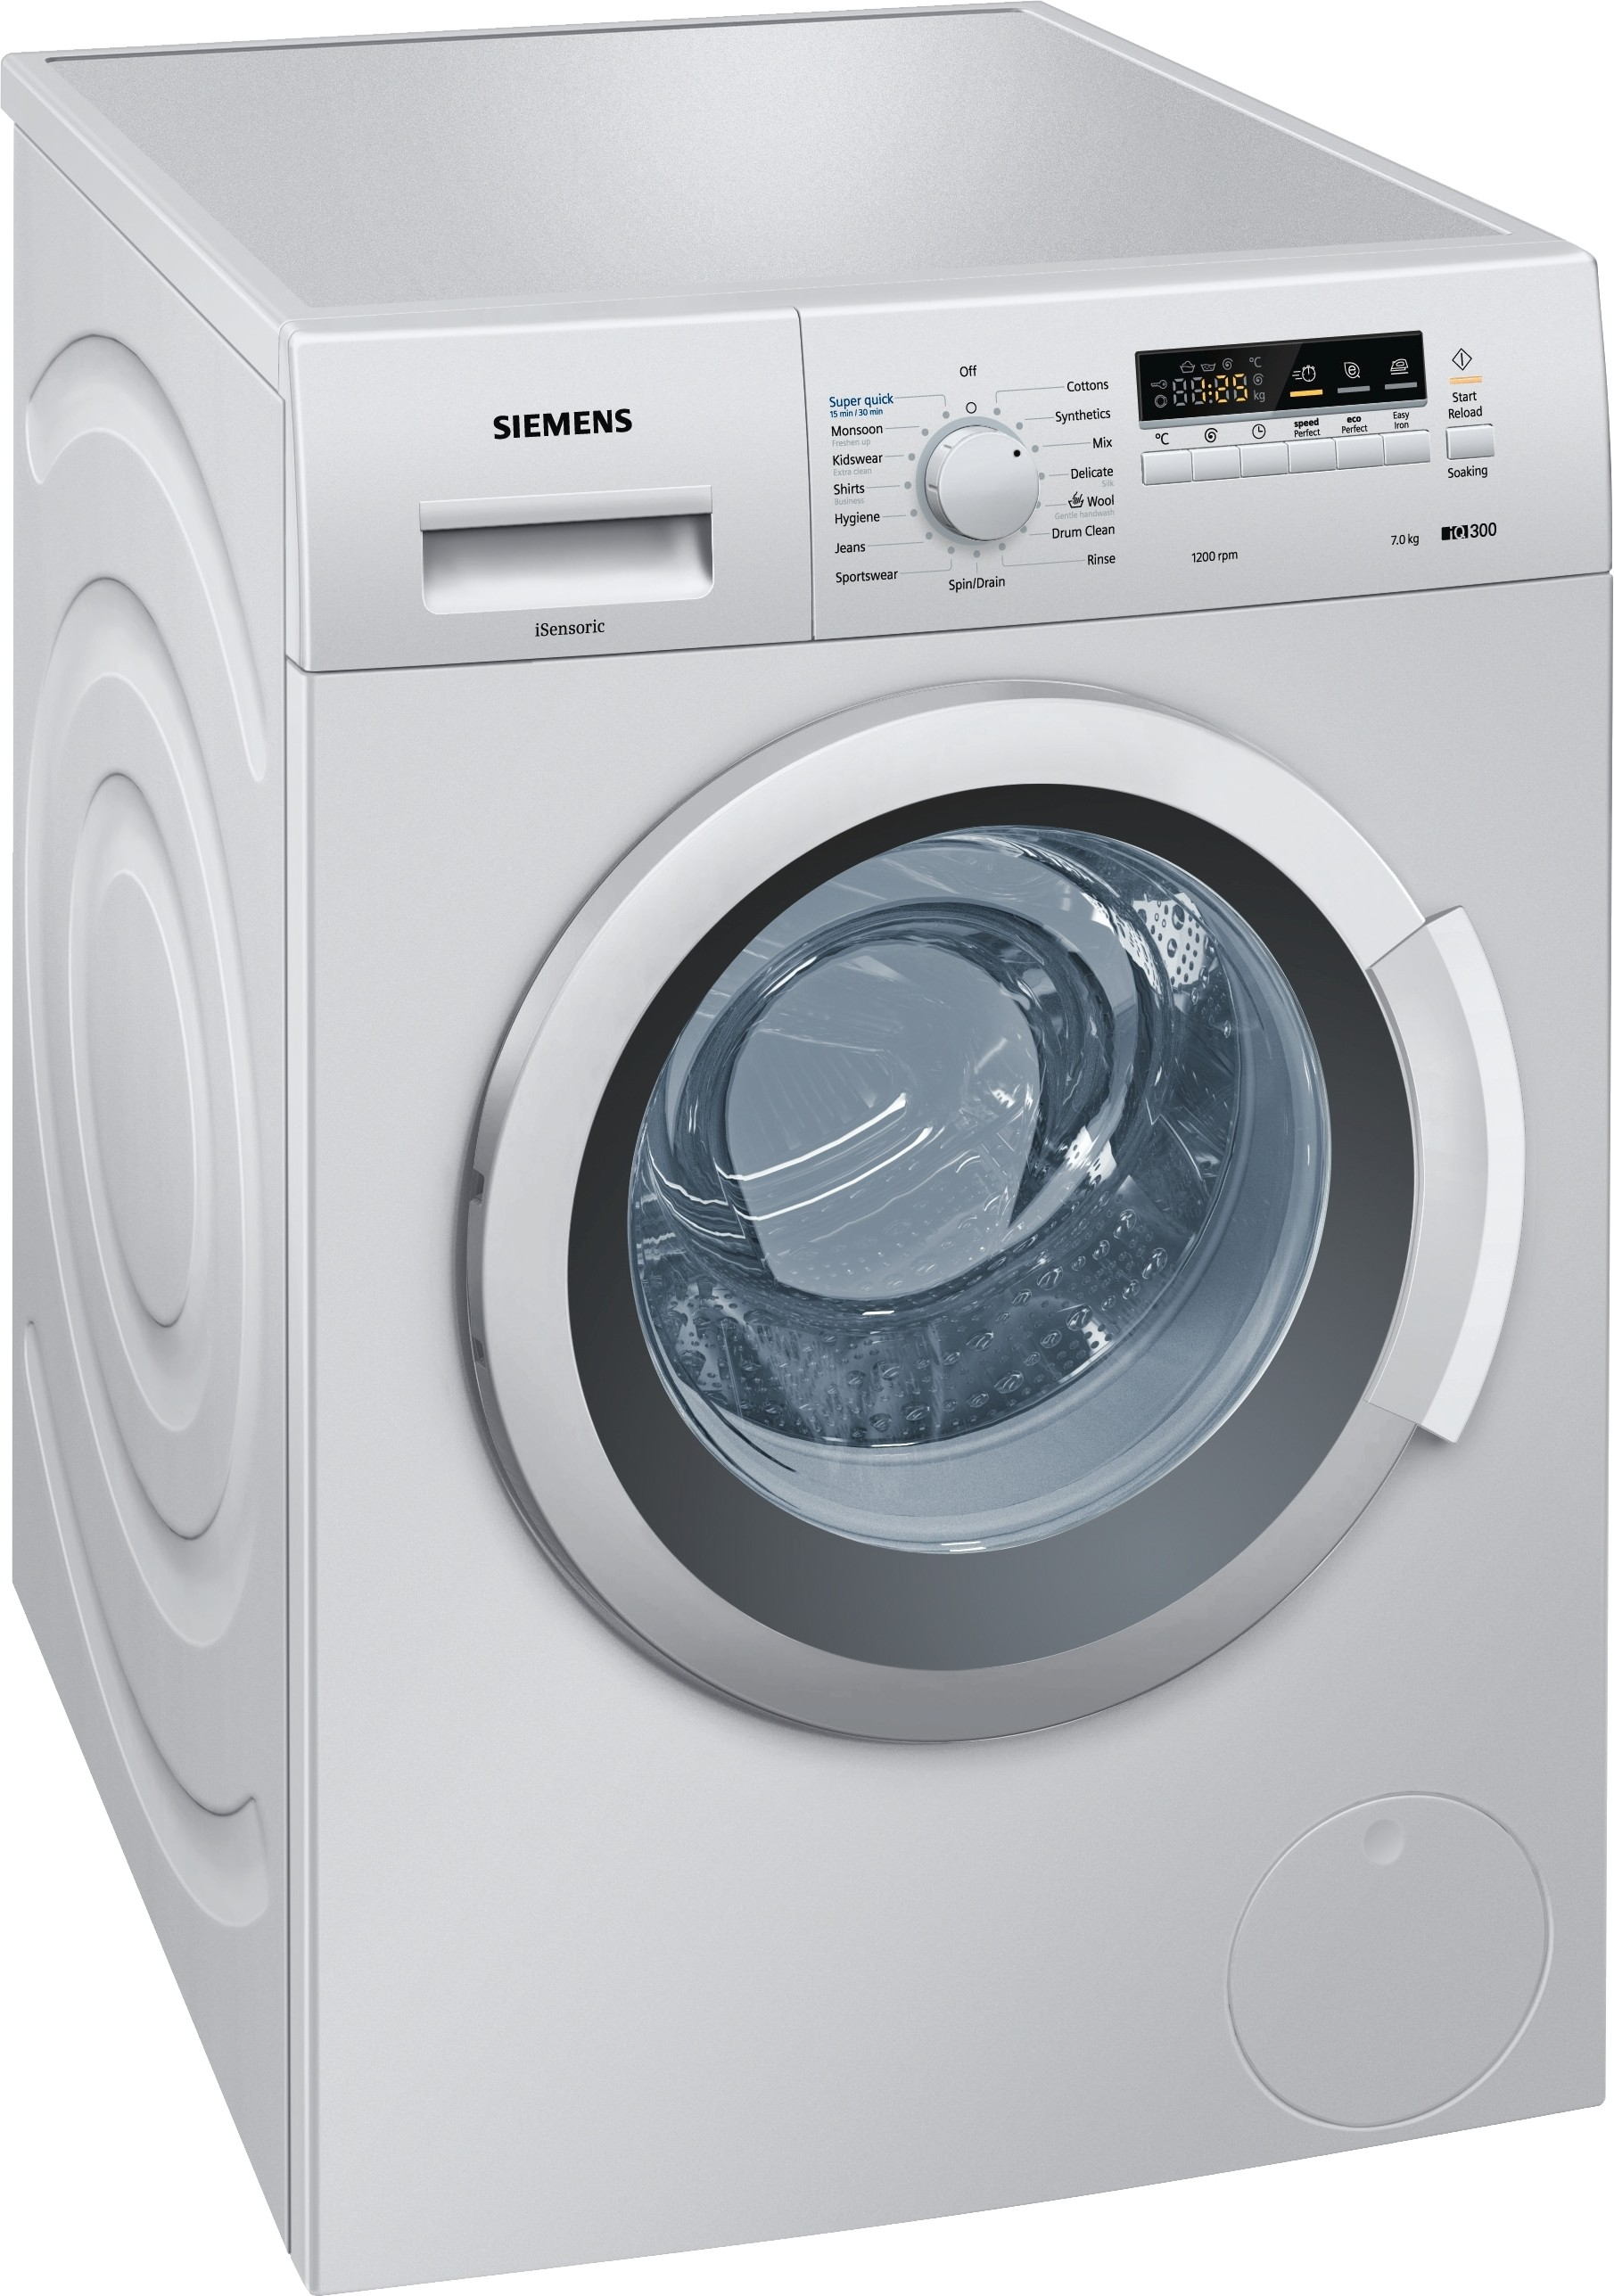 SIEMENS WM12K268IN 7KG Fully Automatic Front Load Washing Machine